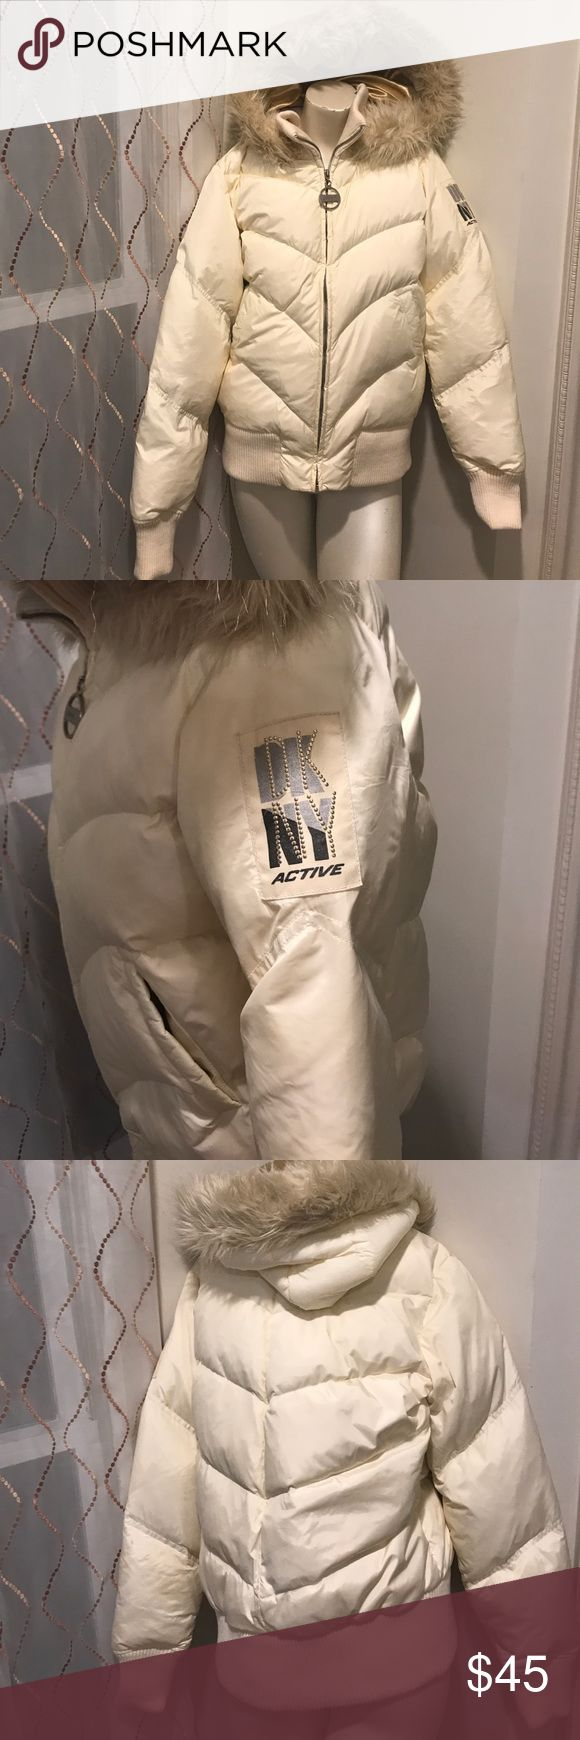 DKNY ACTIVE women's puffer jacket White with gold interior and logo on one sleeve. Great condition minus two small stains on back as shown in pictures. Faux fur accented hood. A pretty and warm coat. Dkny Jackets & Coats Puffers